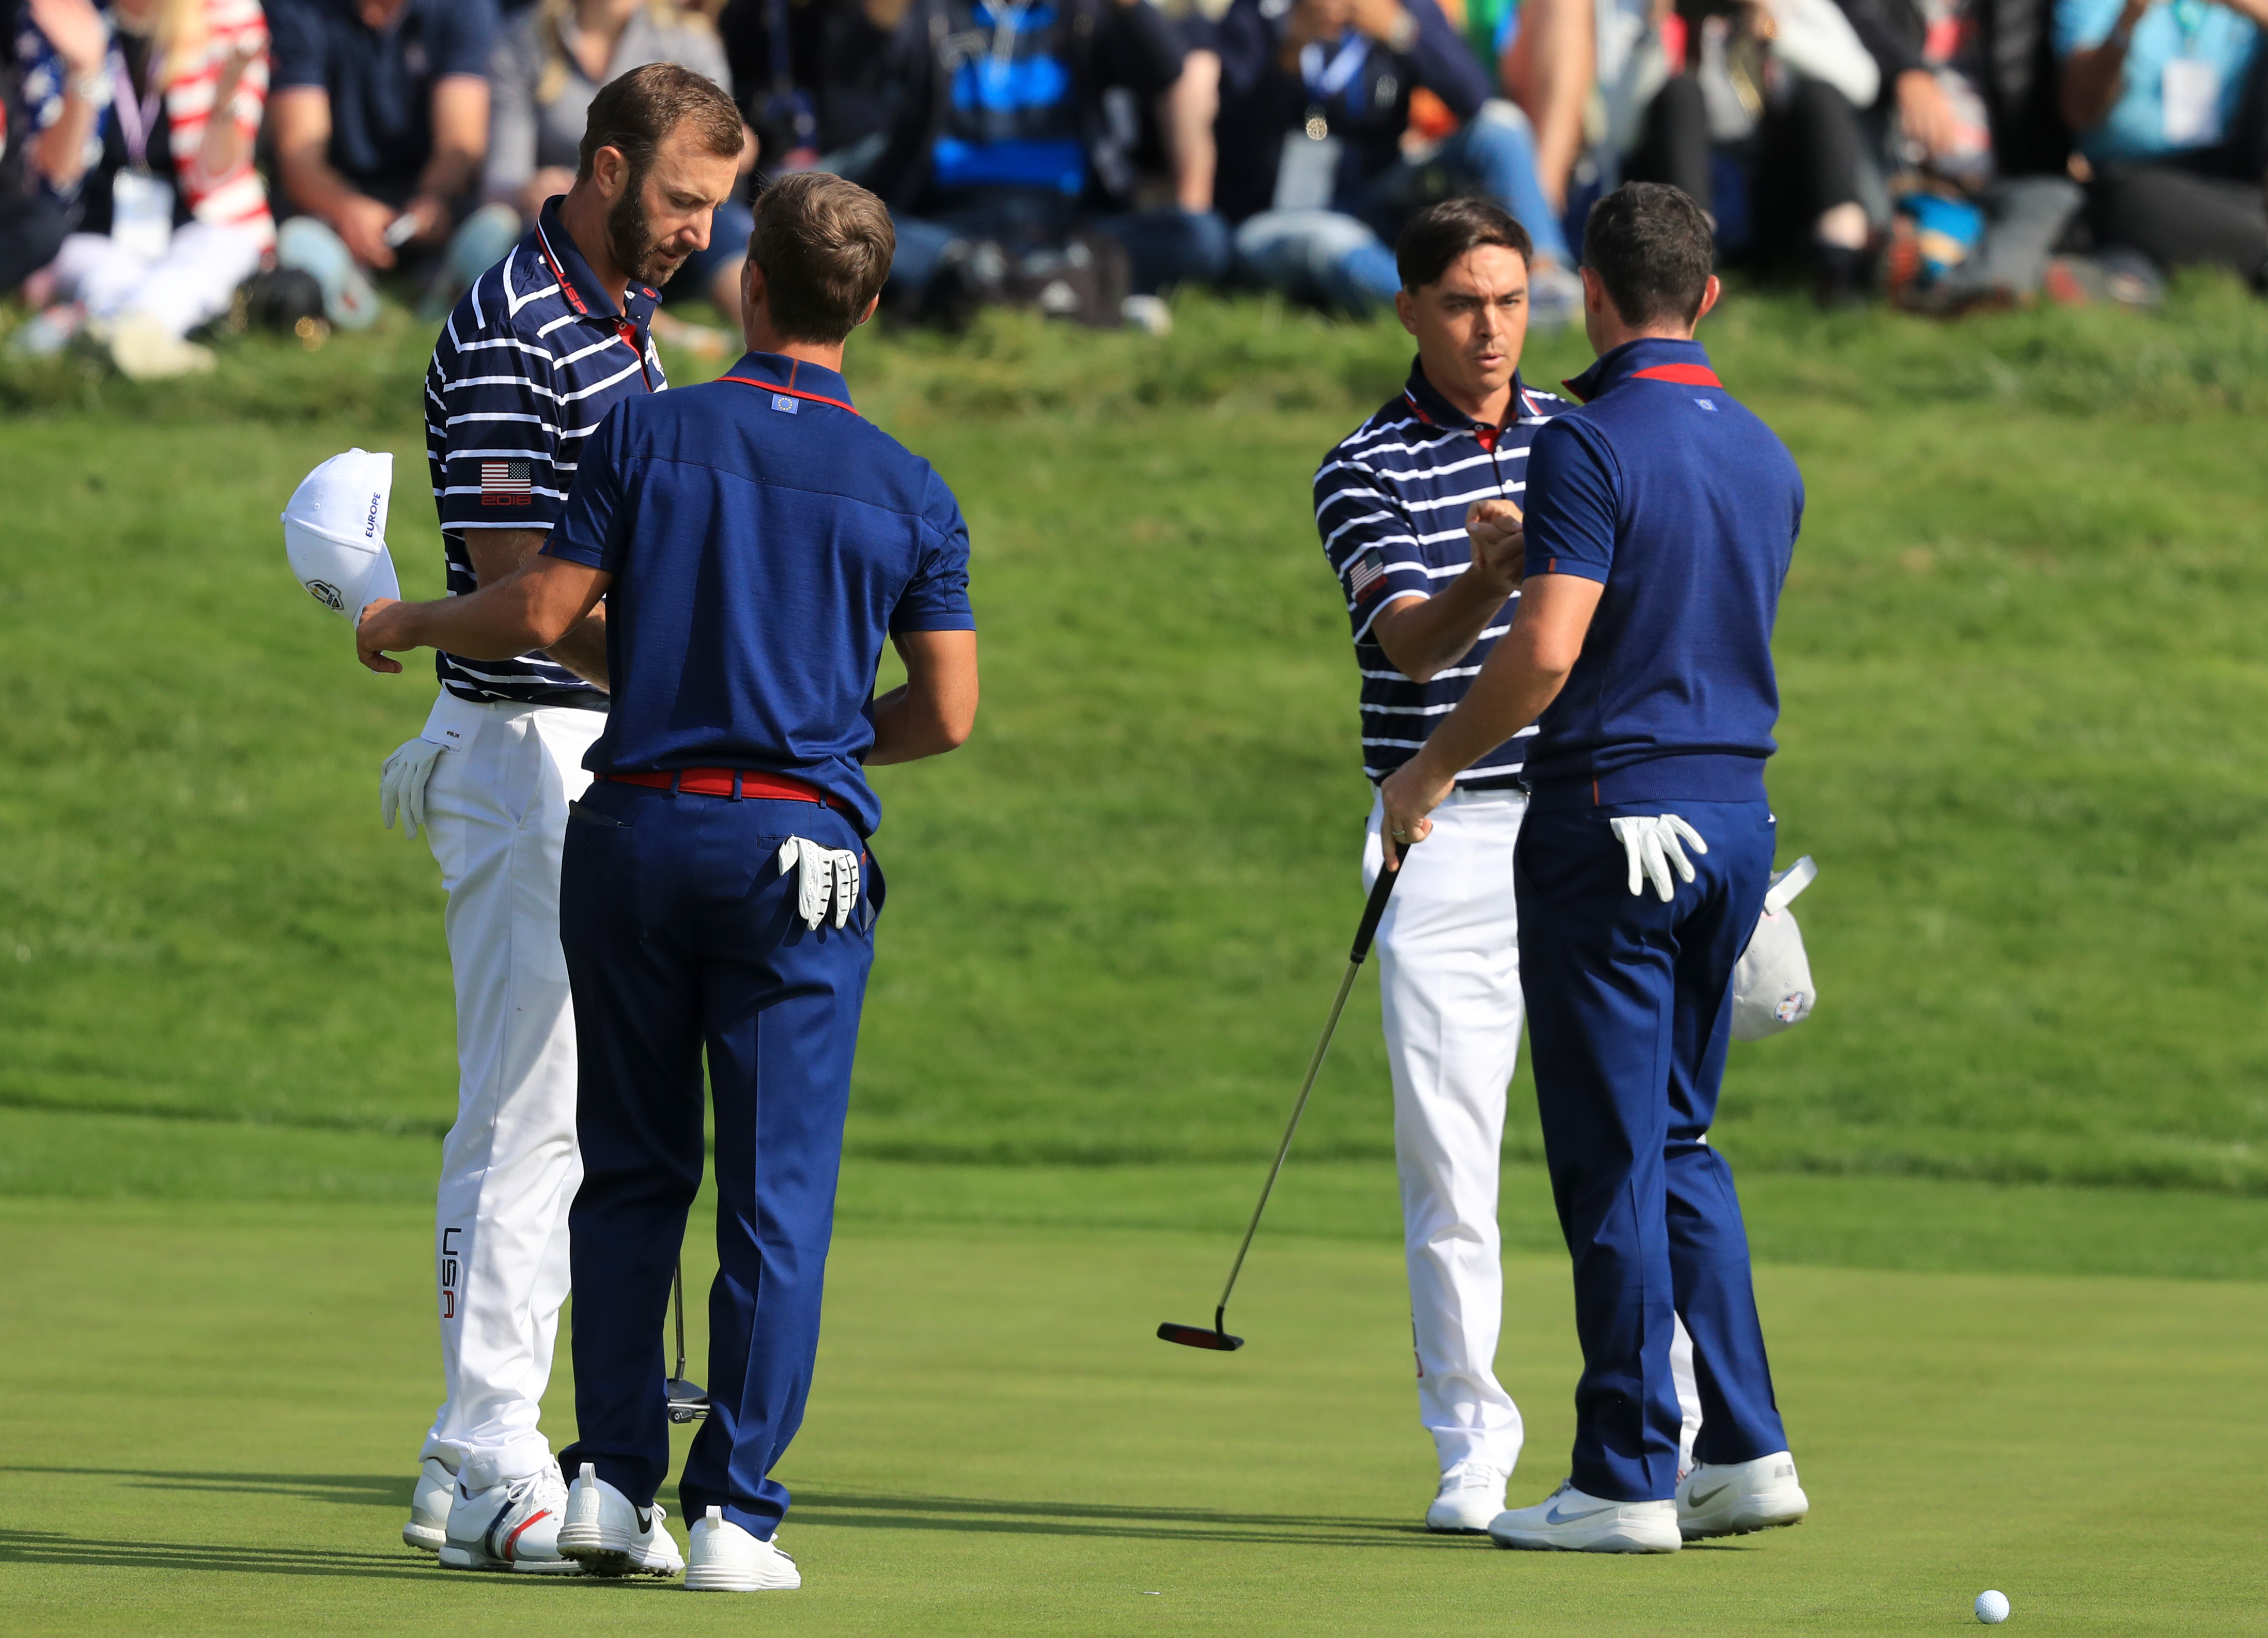 42nd Ryder Cup - Day One - Le Golf National